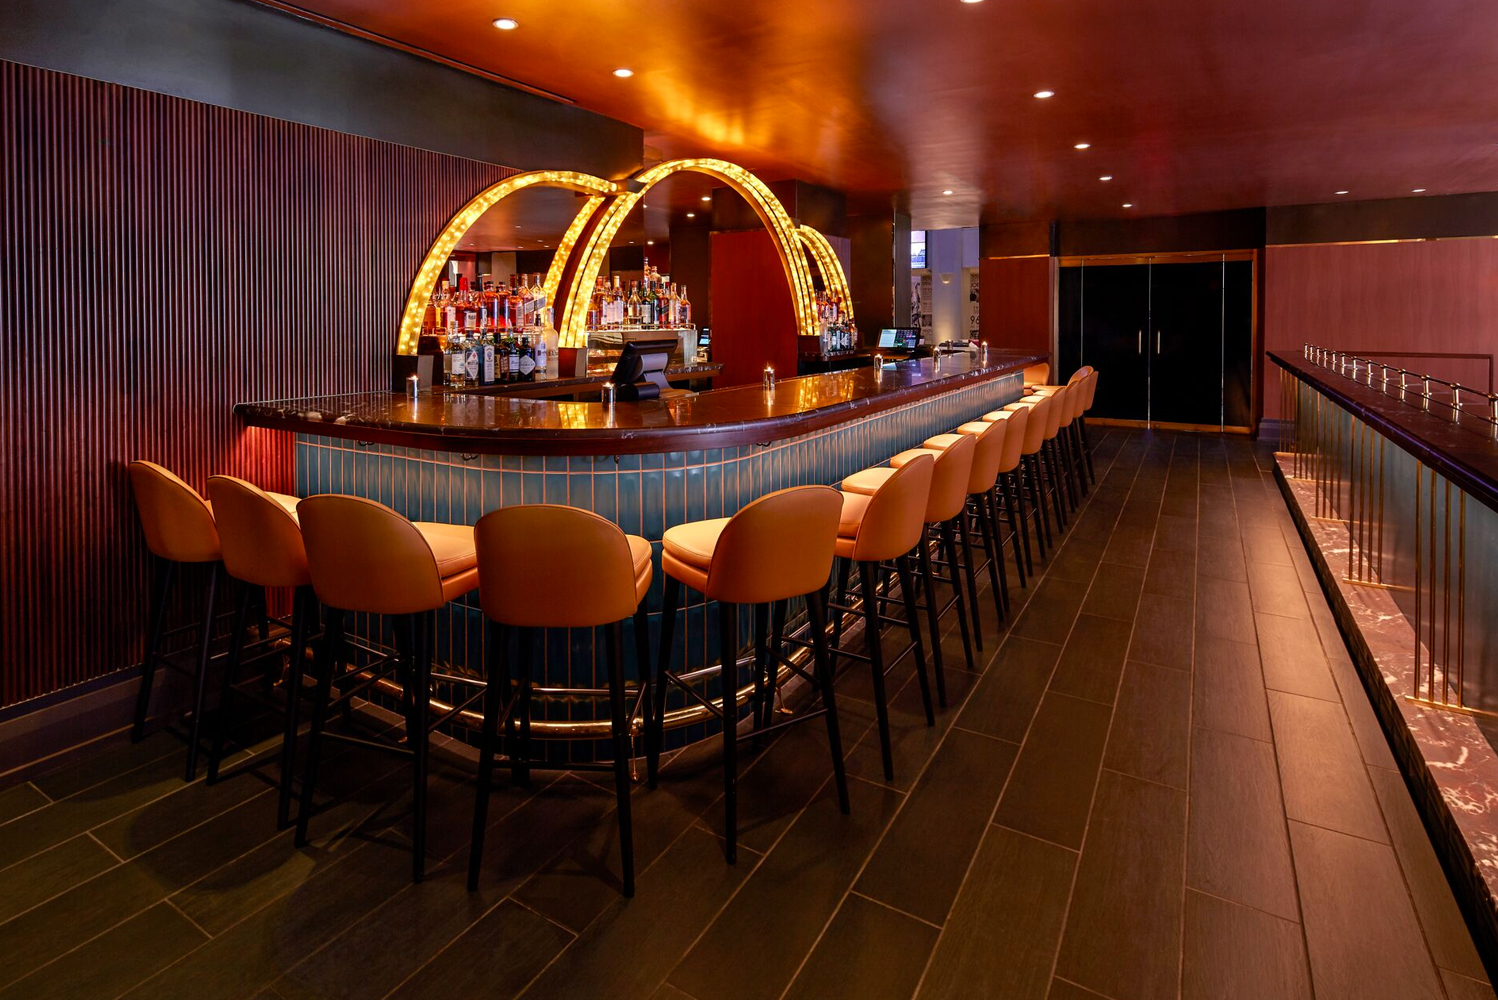 The Lexington Hotel, Autograph Collection opened The Stayton Room, a new bar concept that pays homage to the property's Jazz Age history.